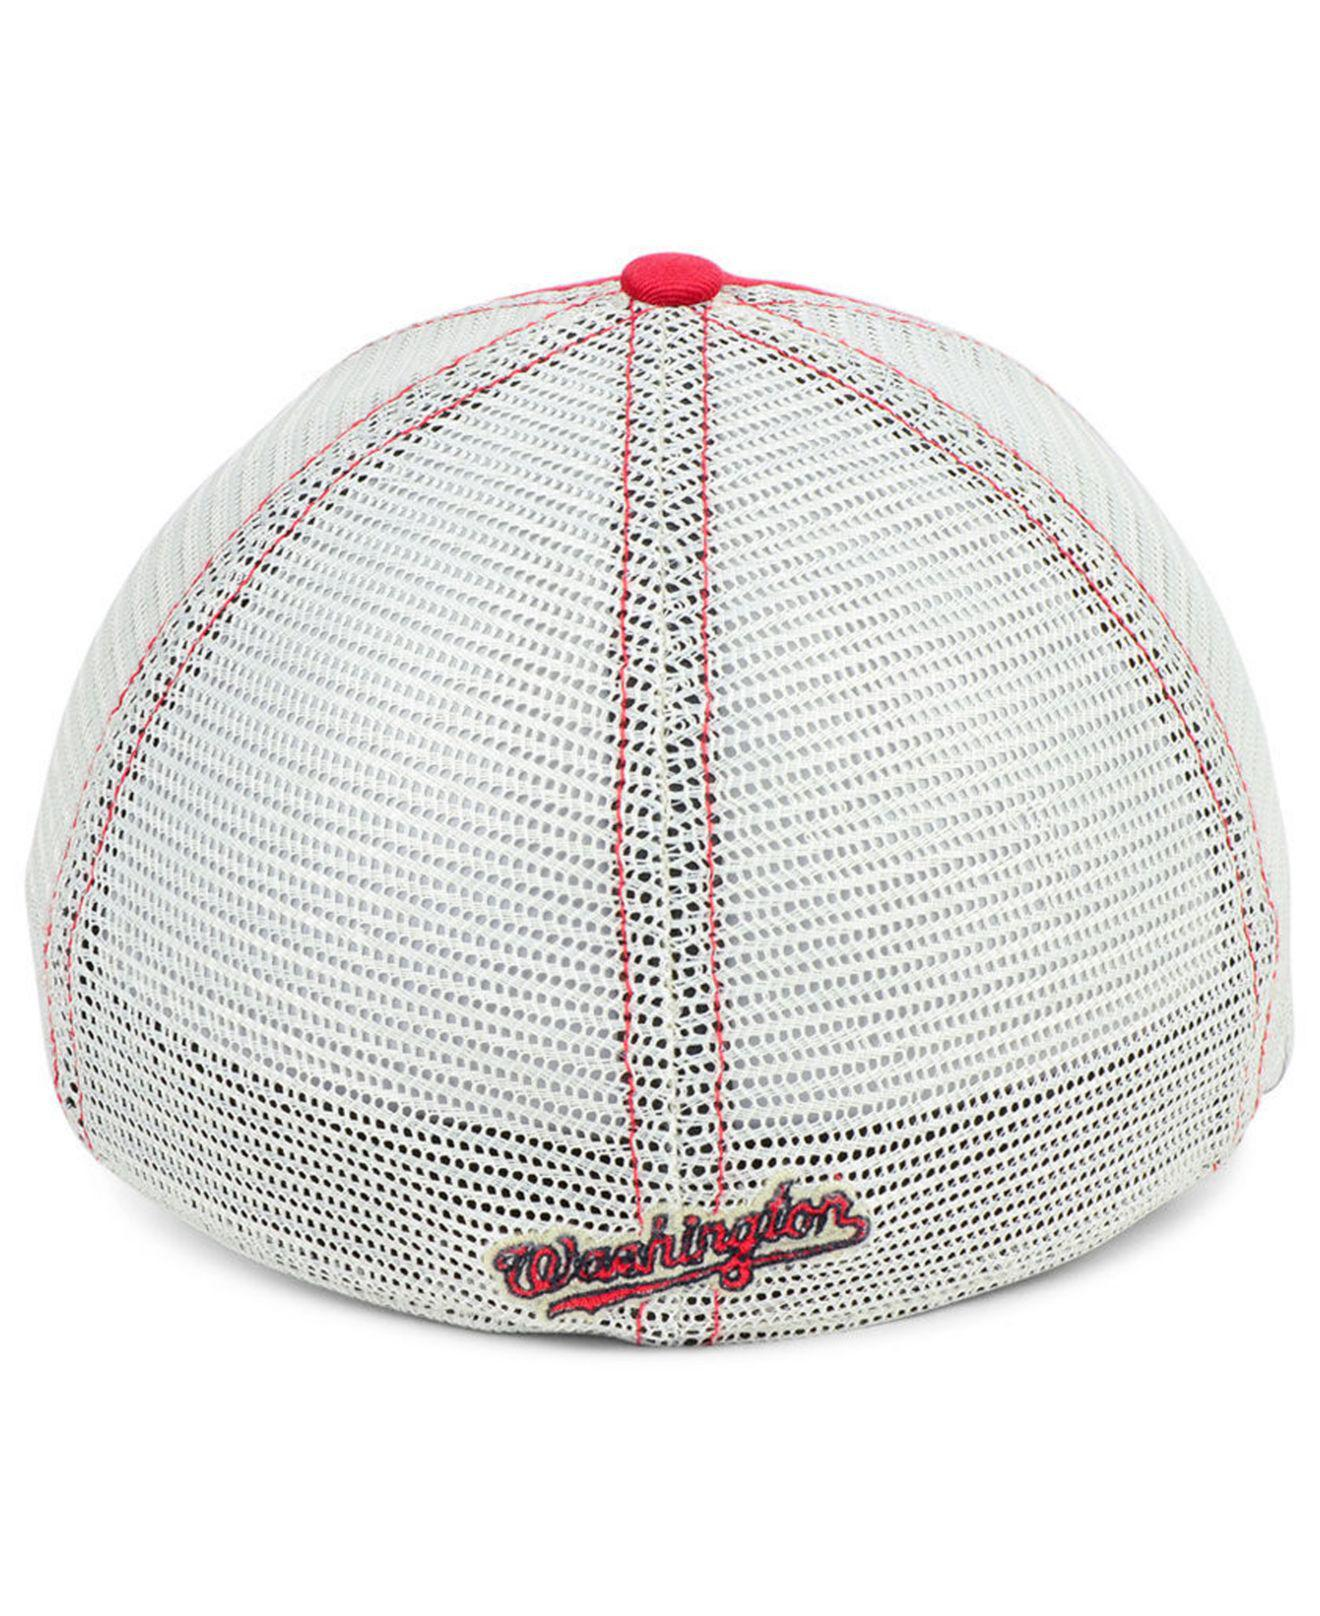 newest f3886 9c77f ... official 47 brand red washington nationals tally closer stretch fitted  cap for men lyst. view